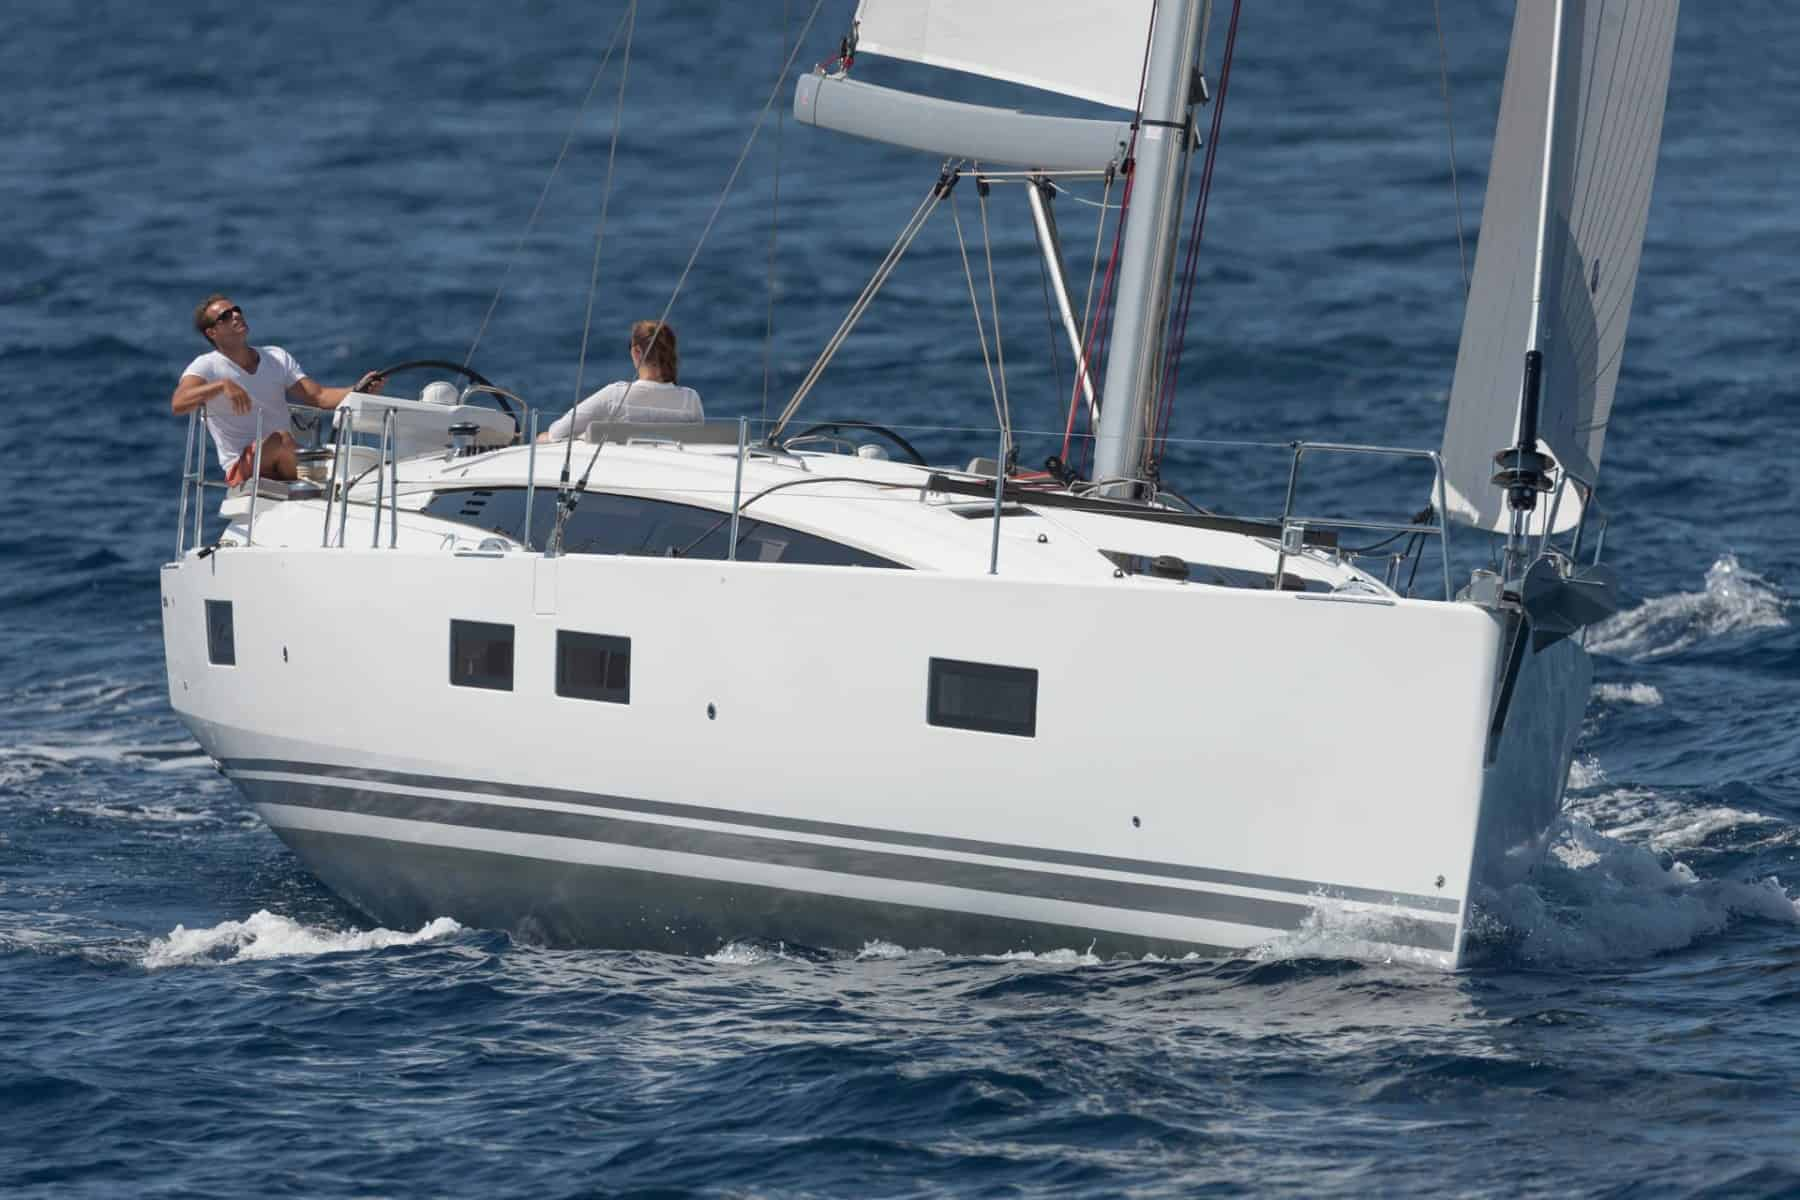 Jeanneau-51-exterior-12-charter-ownership-yacht